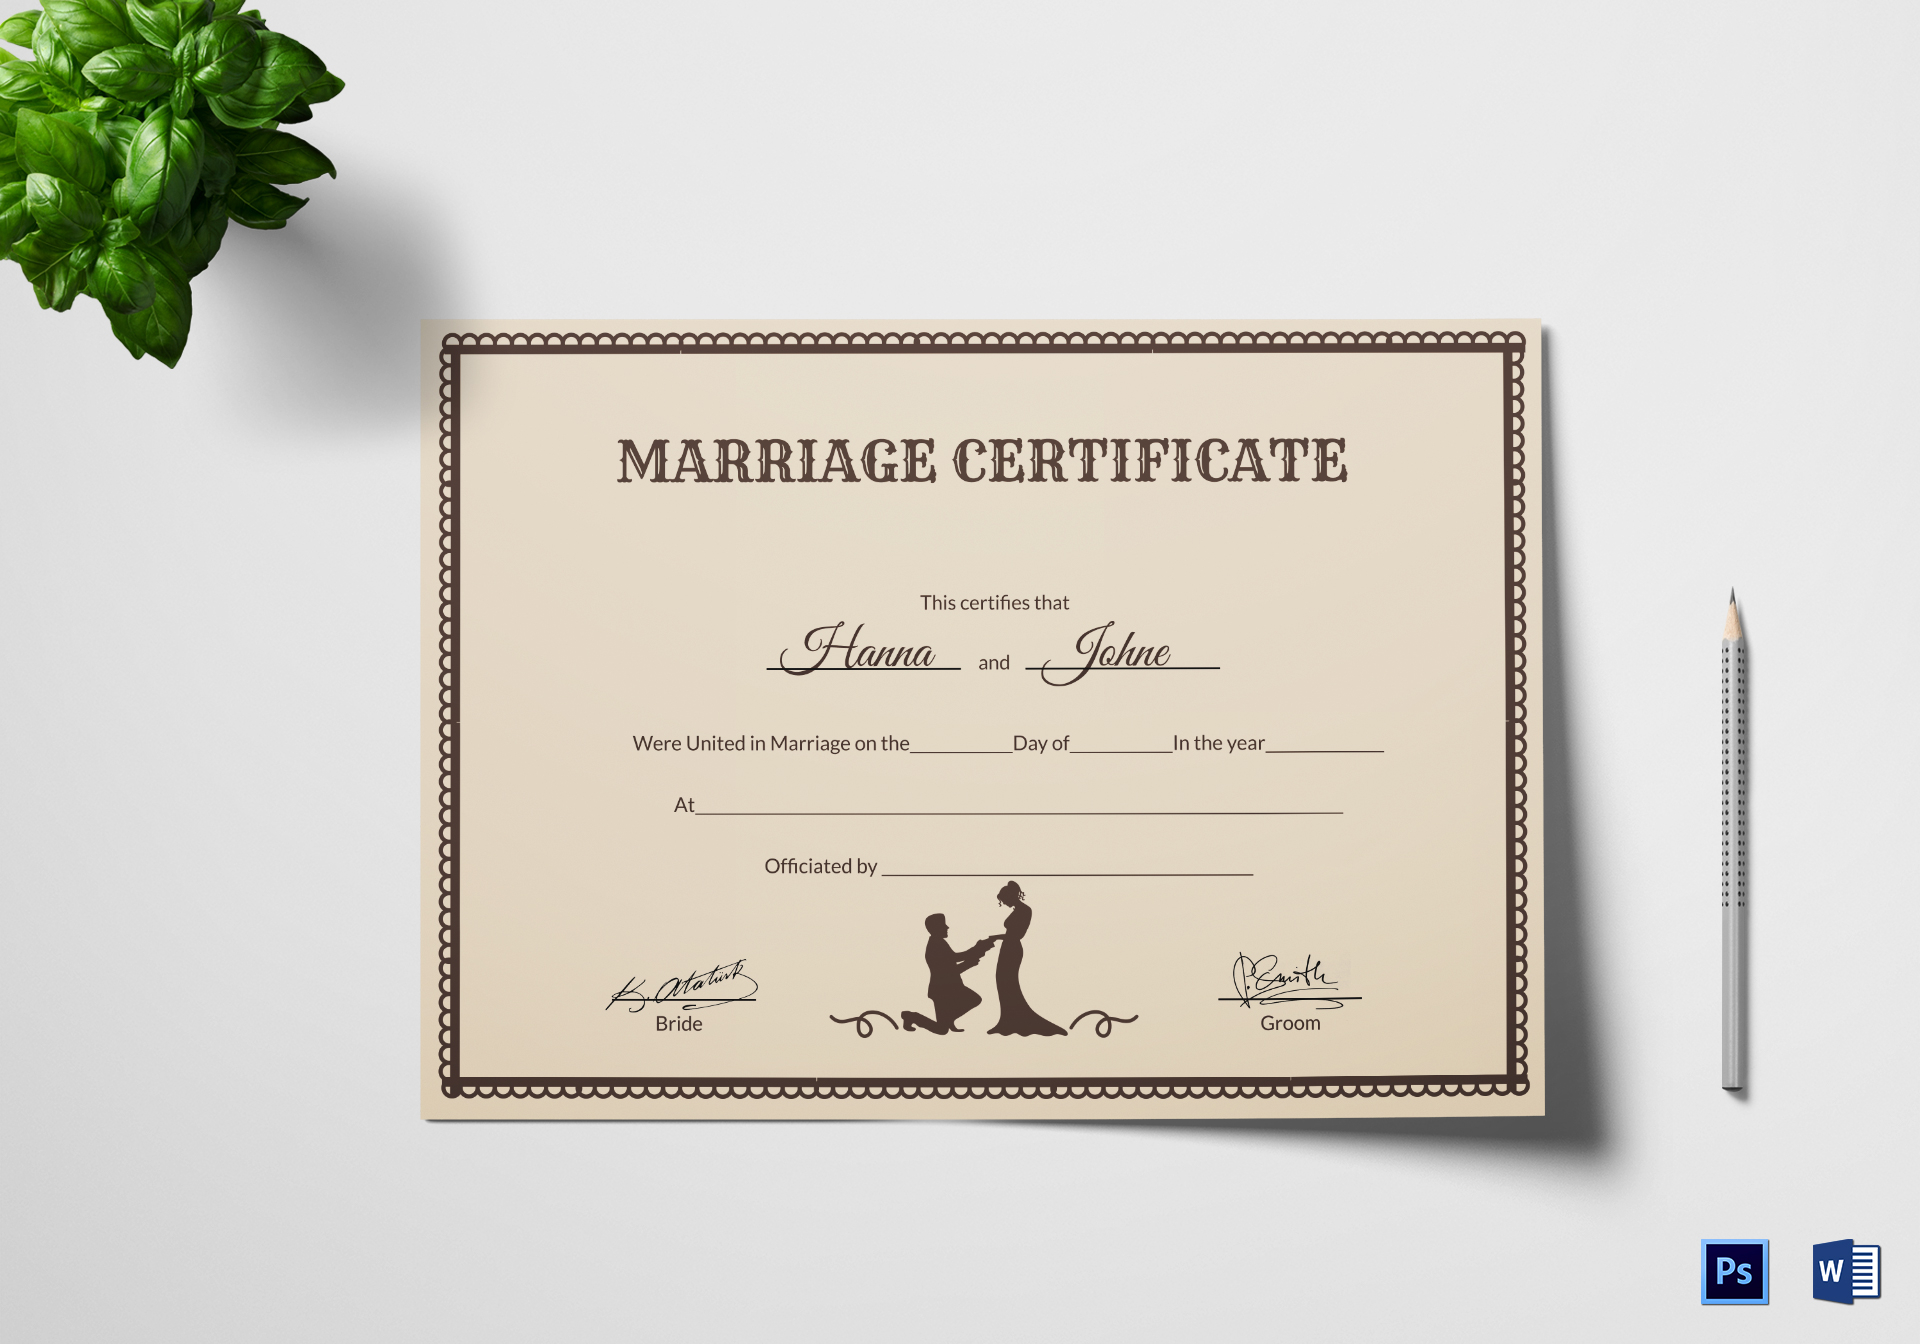 Vintage Marriage Certificate Design Template in PSD, Word